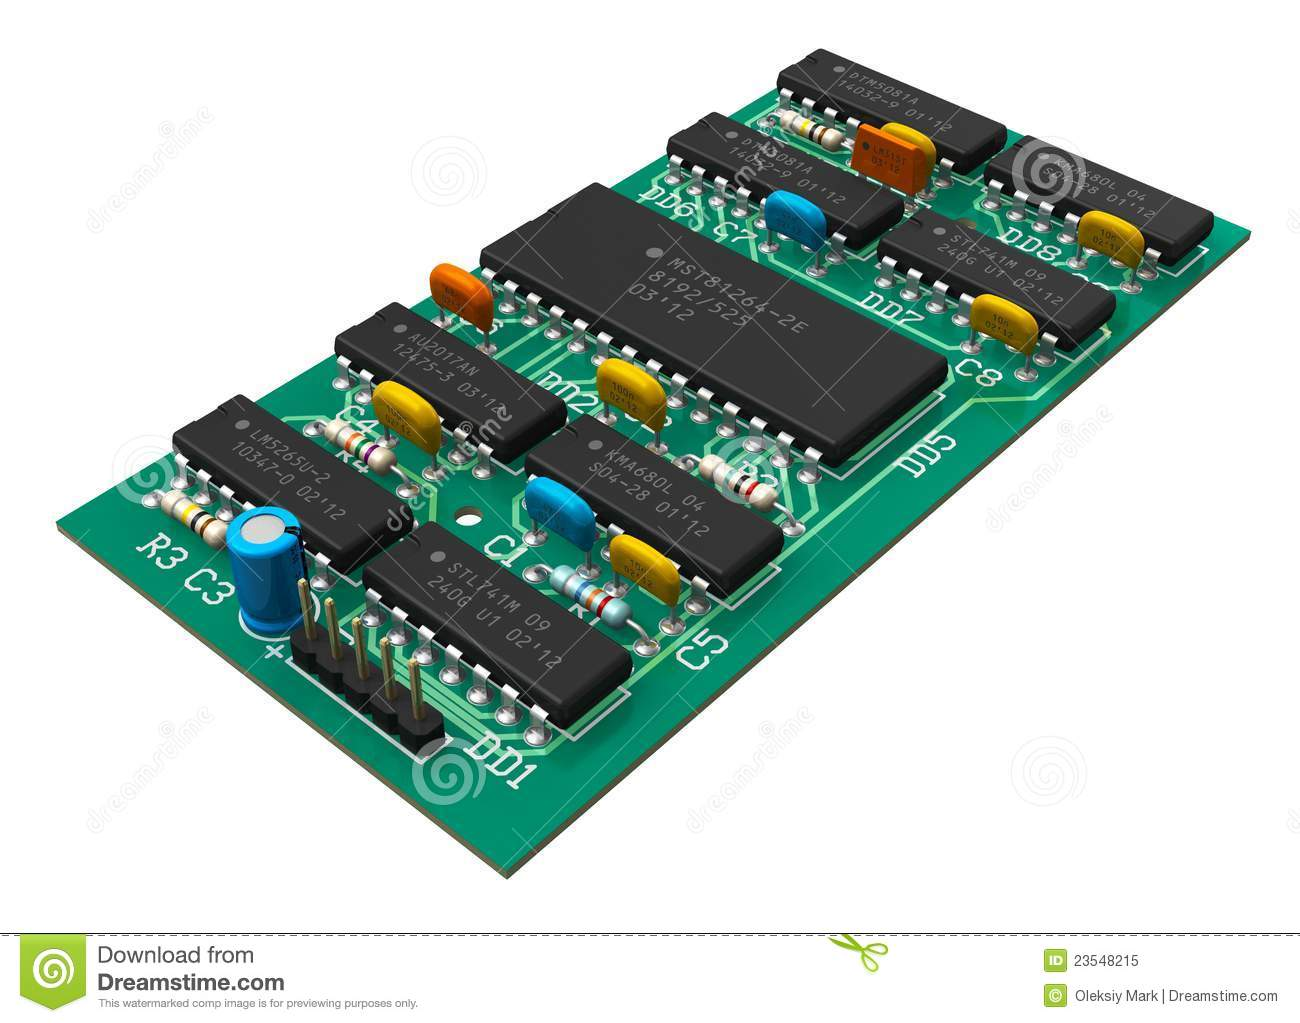 Electronics Industry Concept Digital Circuit Board With Microchips